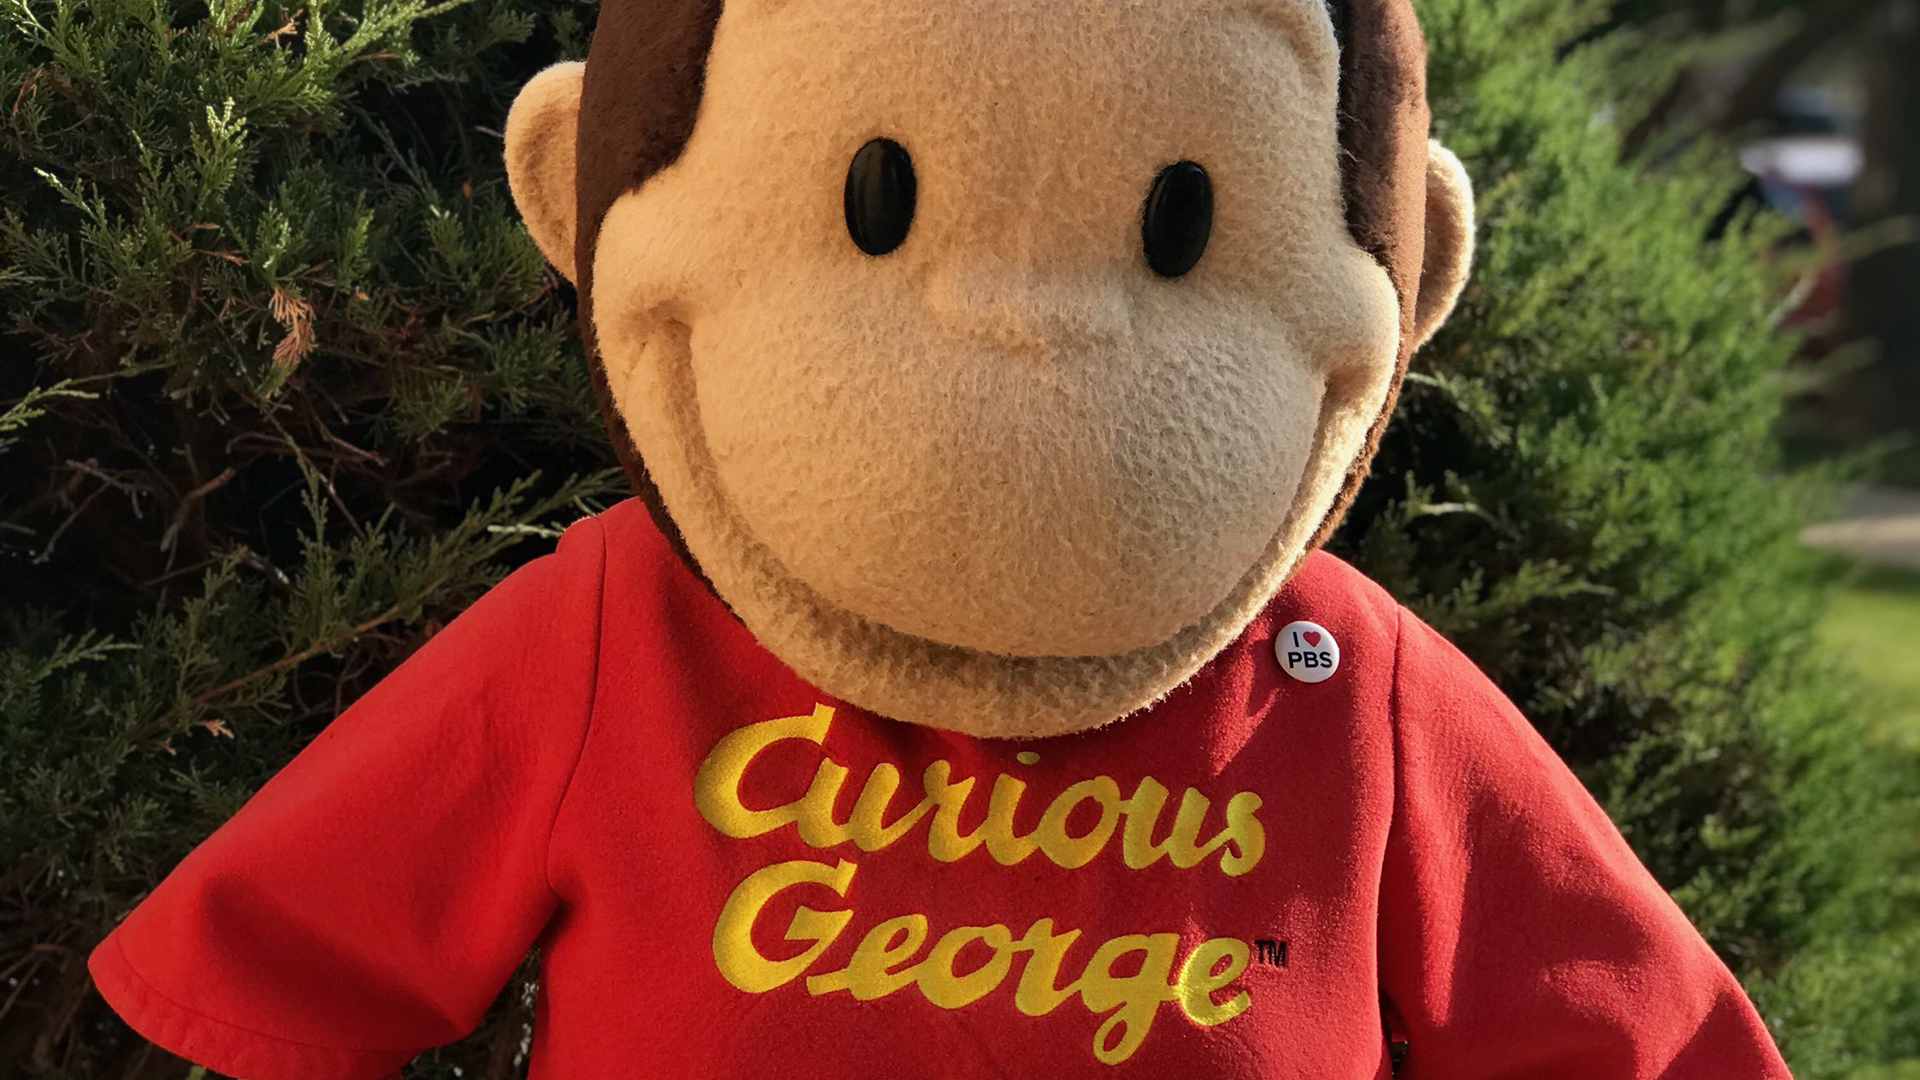 Play Here's Activity Roundup for June 14 to 21, with JuneFest, Curious George, Susan Gibson, Summer Celebration, more